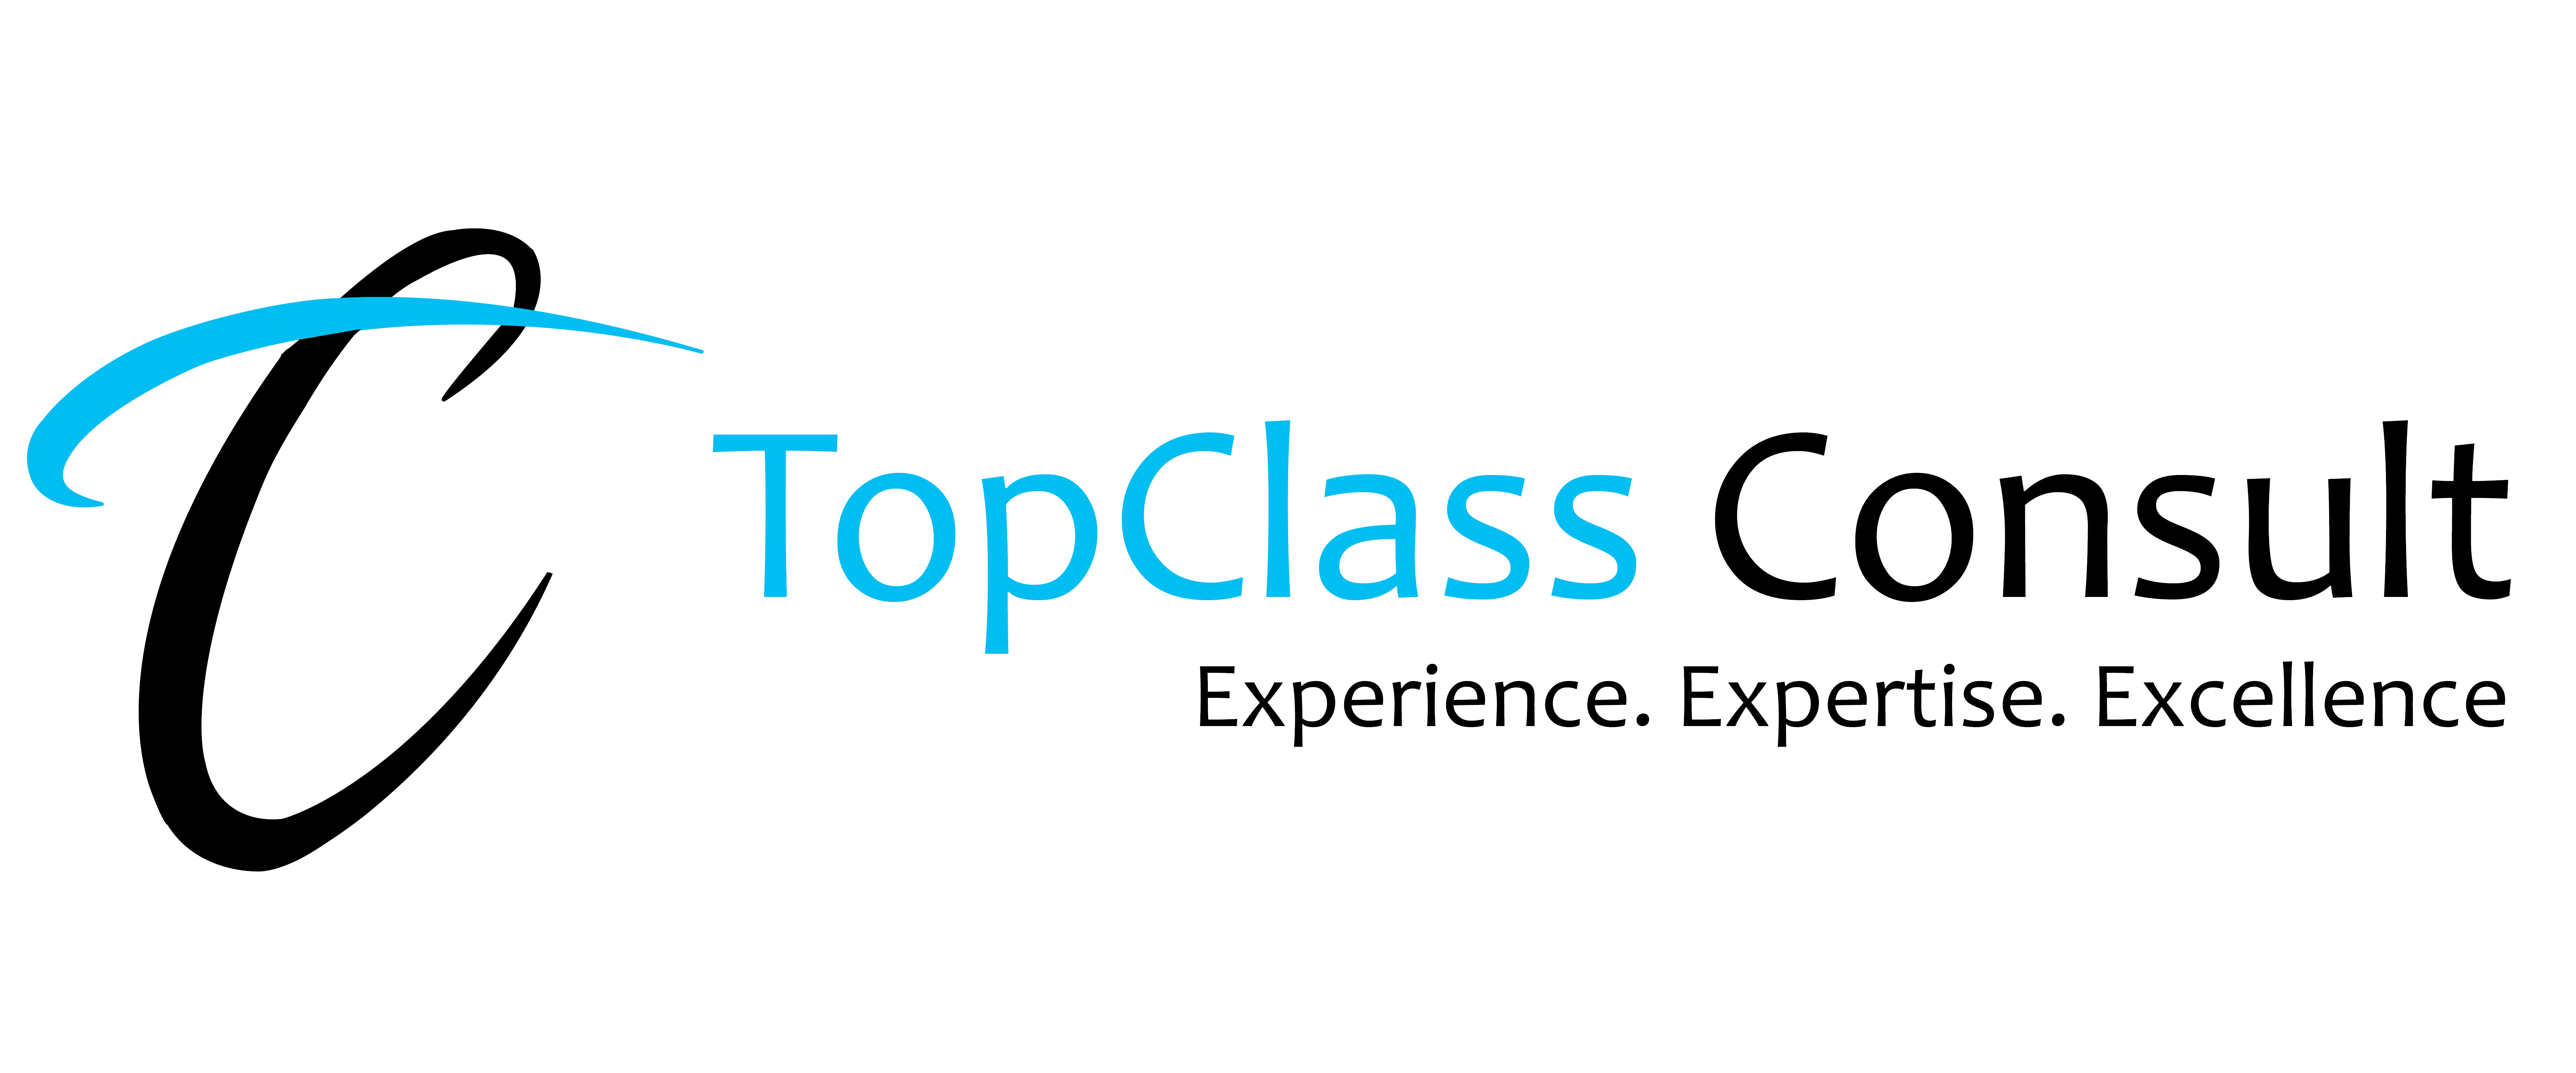 TopClass Consult